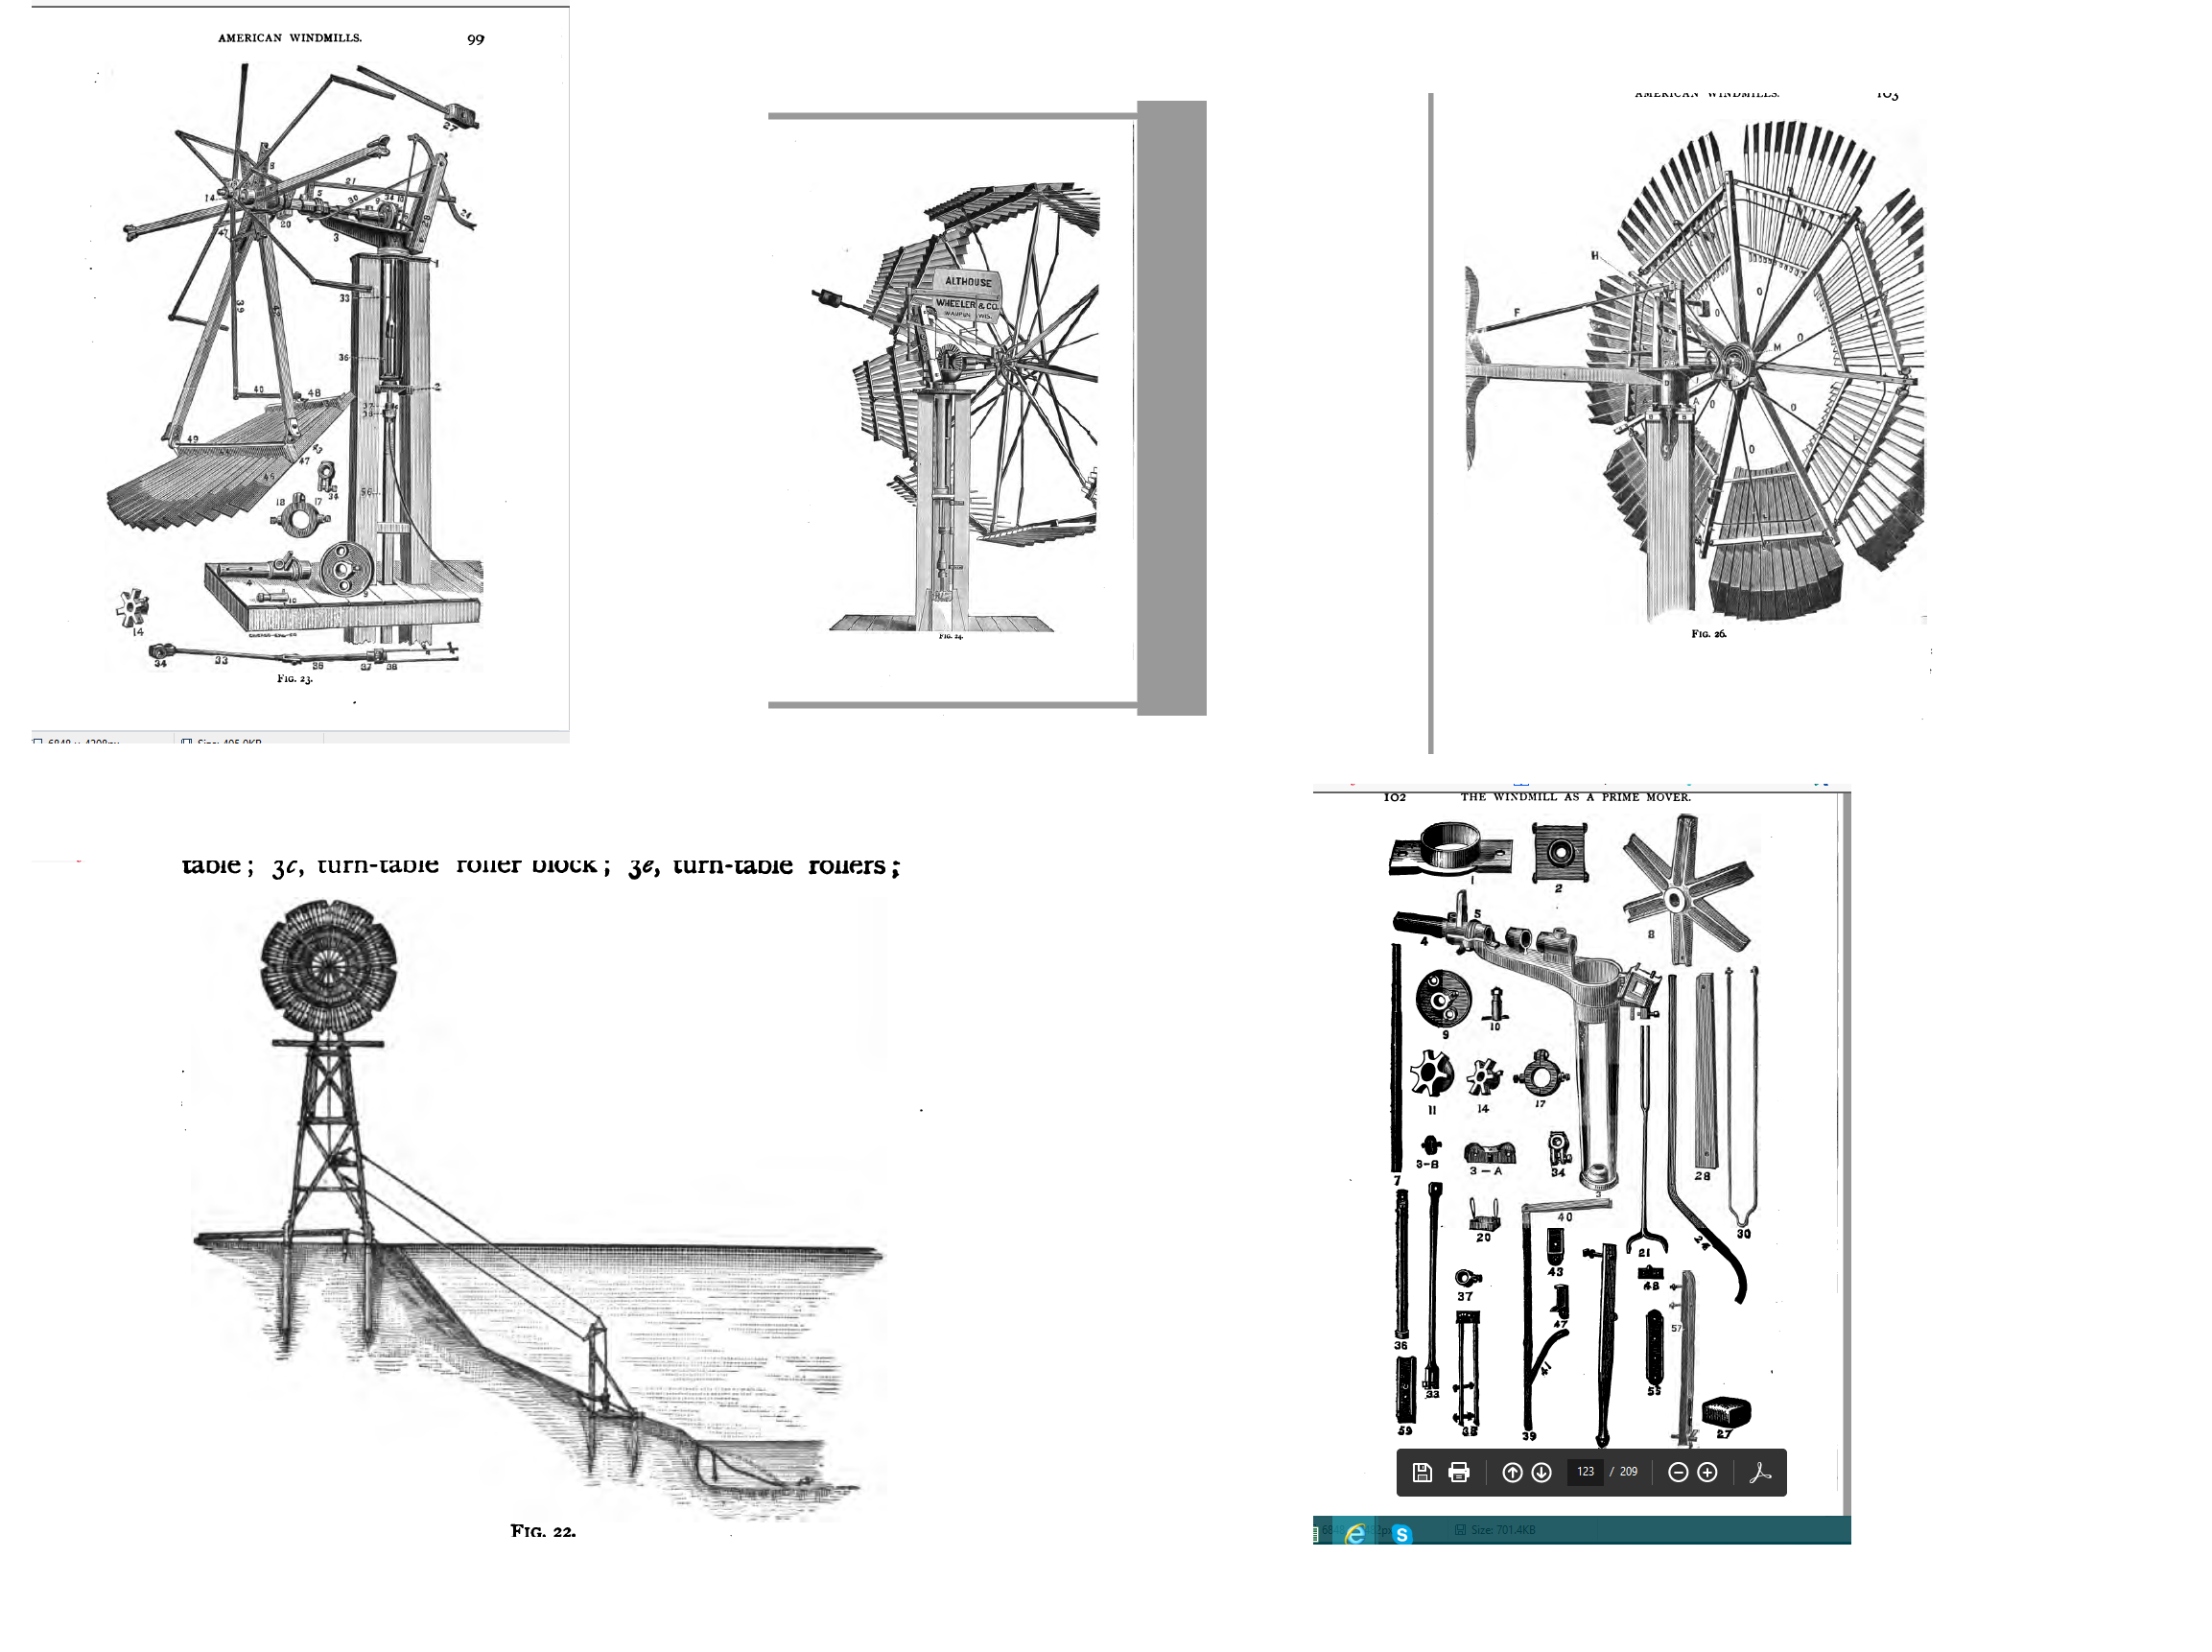 Haladay type of American style windmill about 1910 from Althouse & Wheeler